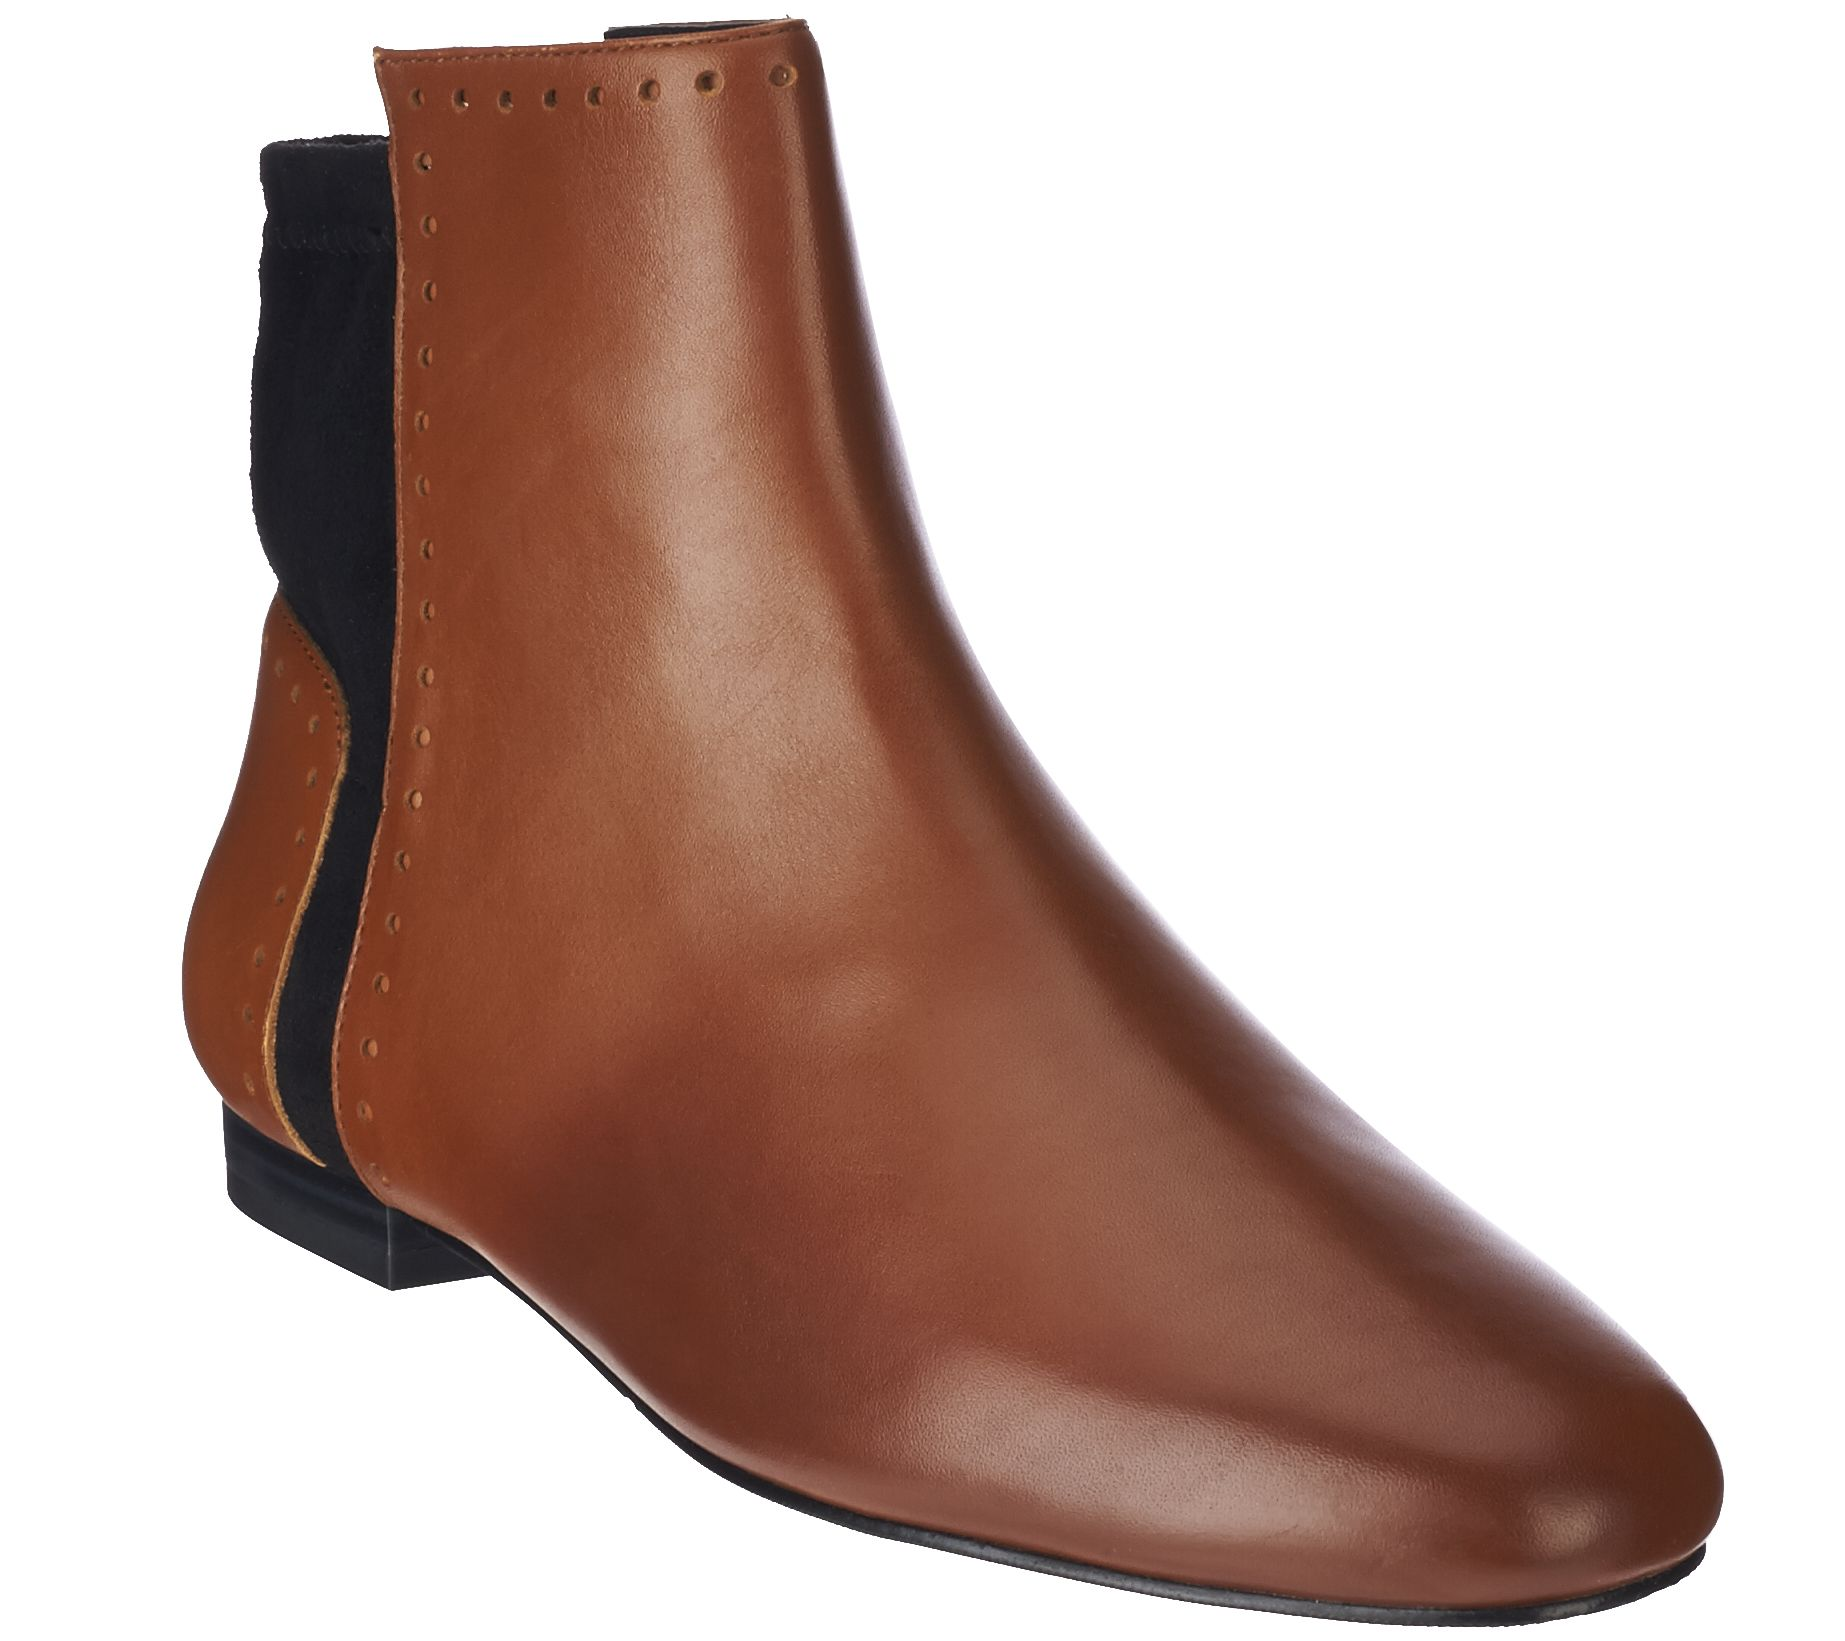 discount low shipping fee LOGO by Lori Goldstein Low Shaft Pebble Leather Boots authentic cheap price sale looking for outlet best place outlet cost k3MrCzQk